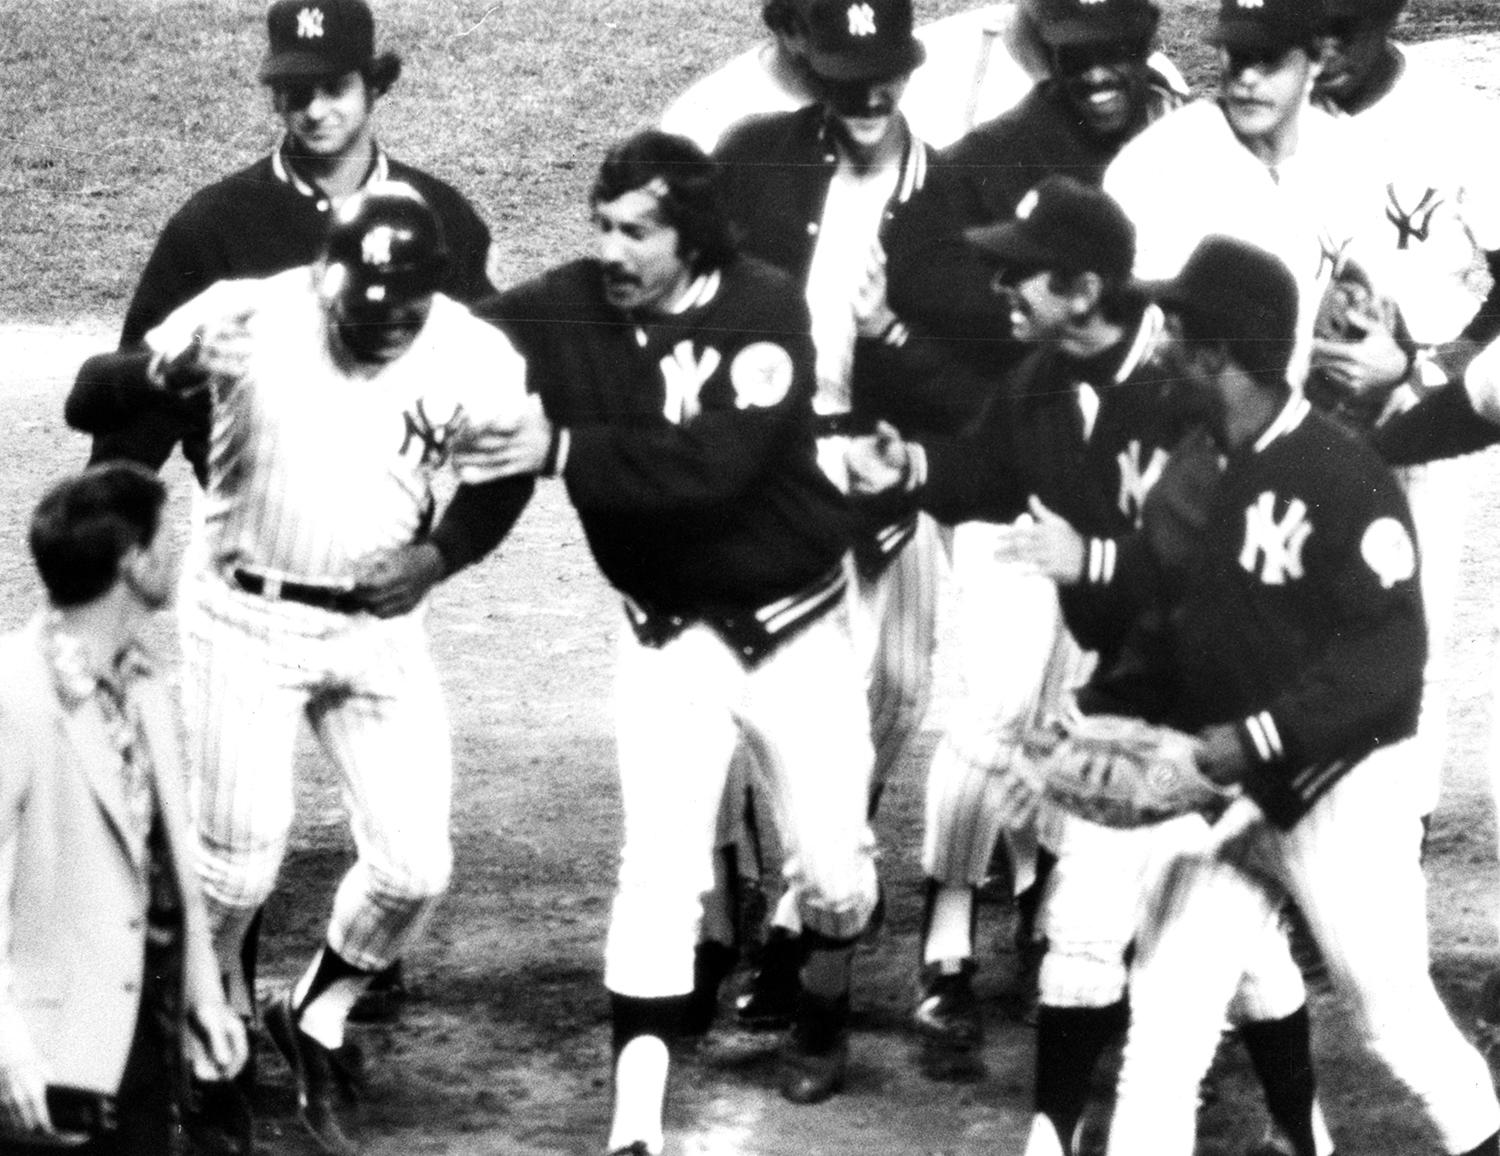 Reggie Jackson celebrates with his Yankees teammates after hitting a home run during the 1977 season. (National Baseball Hall of Fame and Museum)